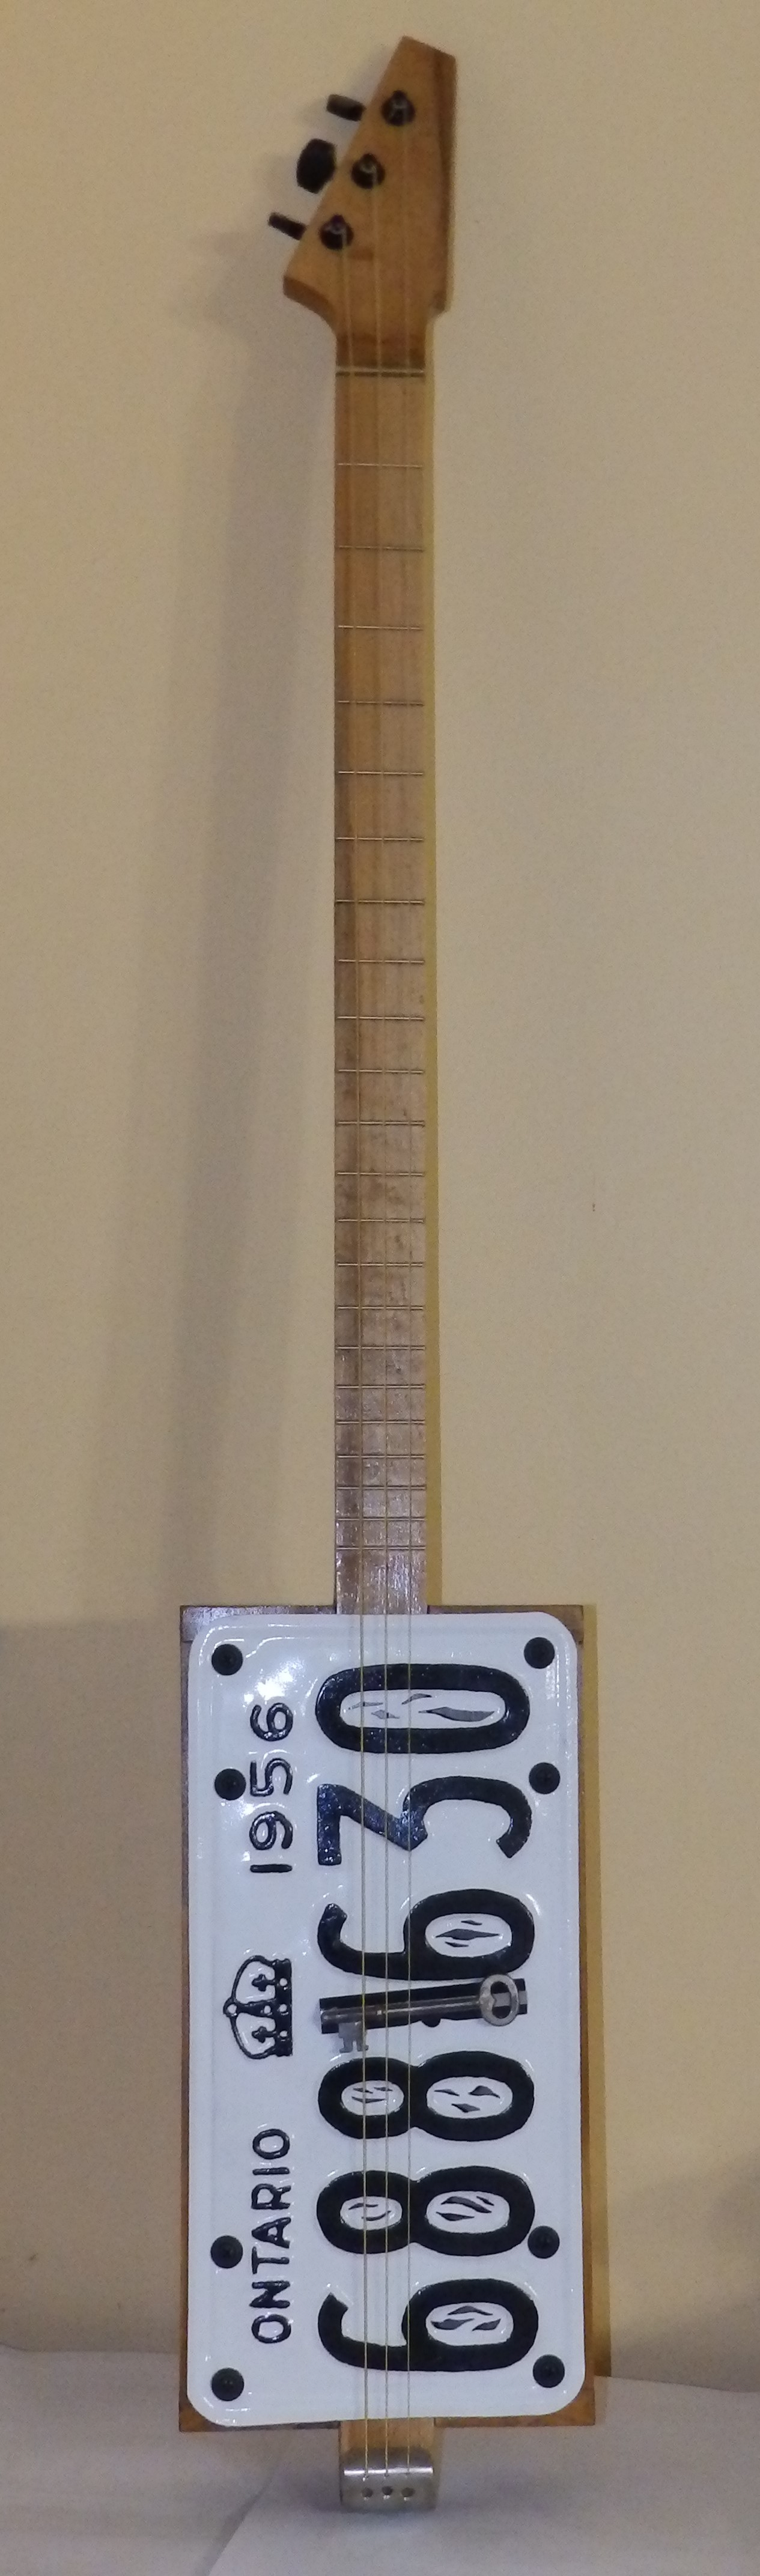 license plate 3 string guitar